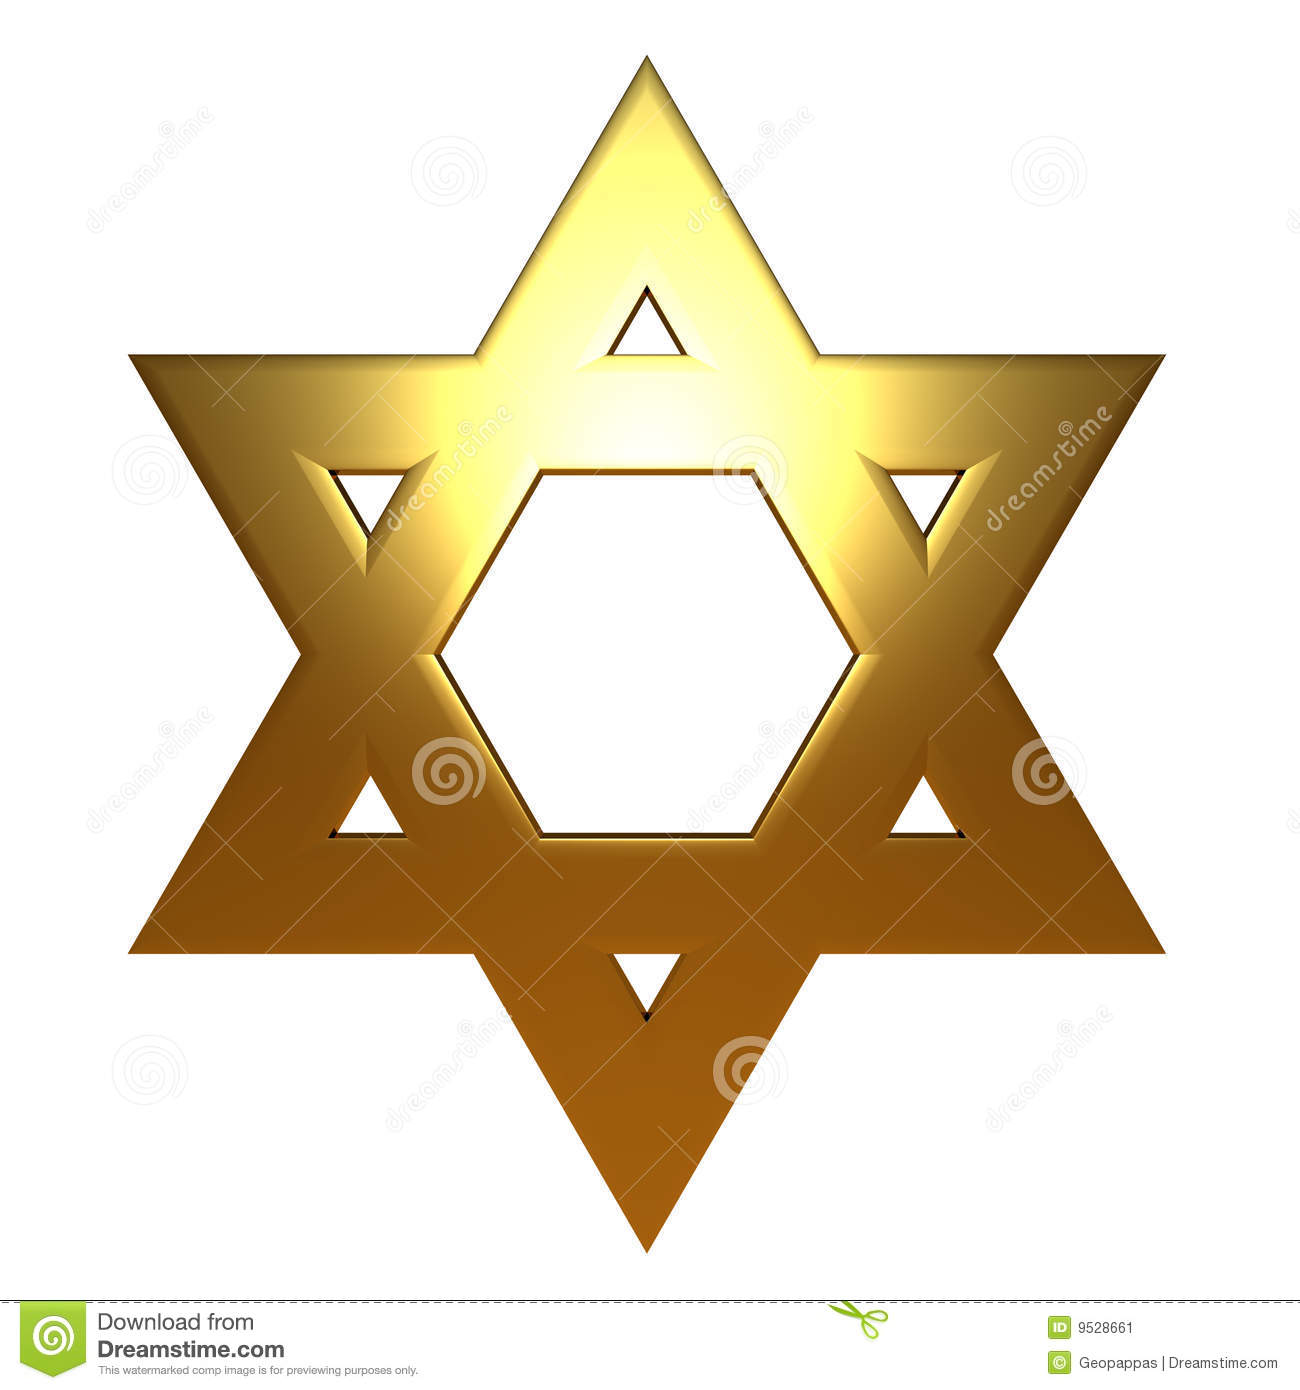 dorado jewish singles A comprehensive listing of arkansas synagogues, arkansas shuls and arkansasjewish temples from mavensearch, the jewish directory.